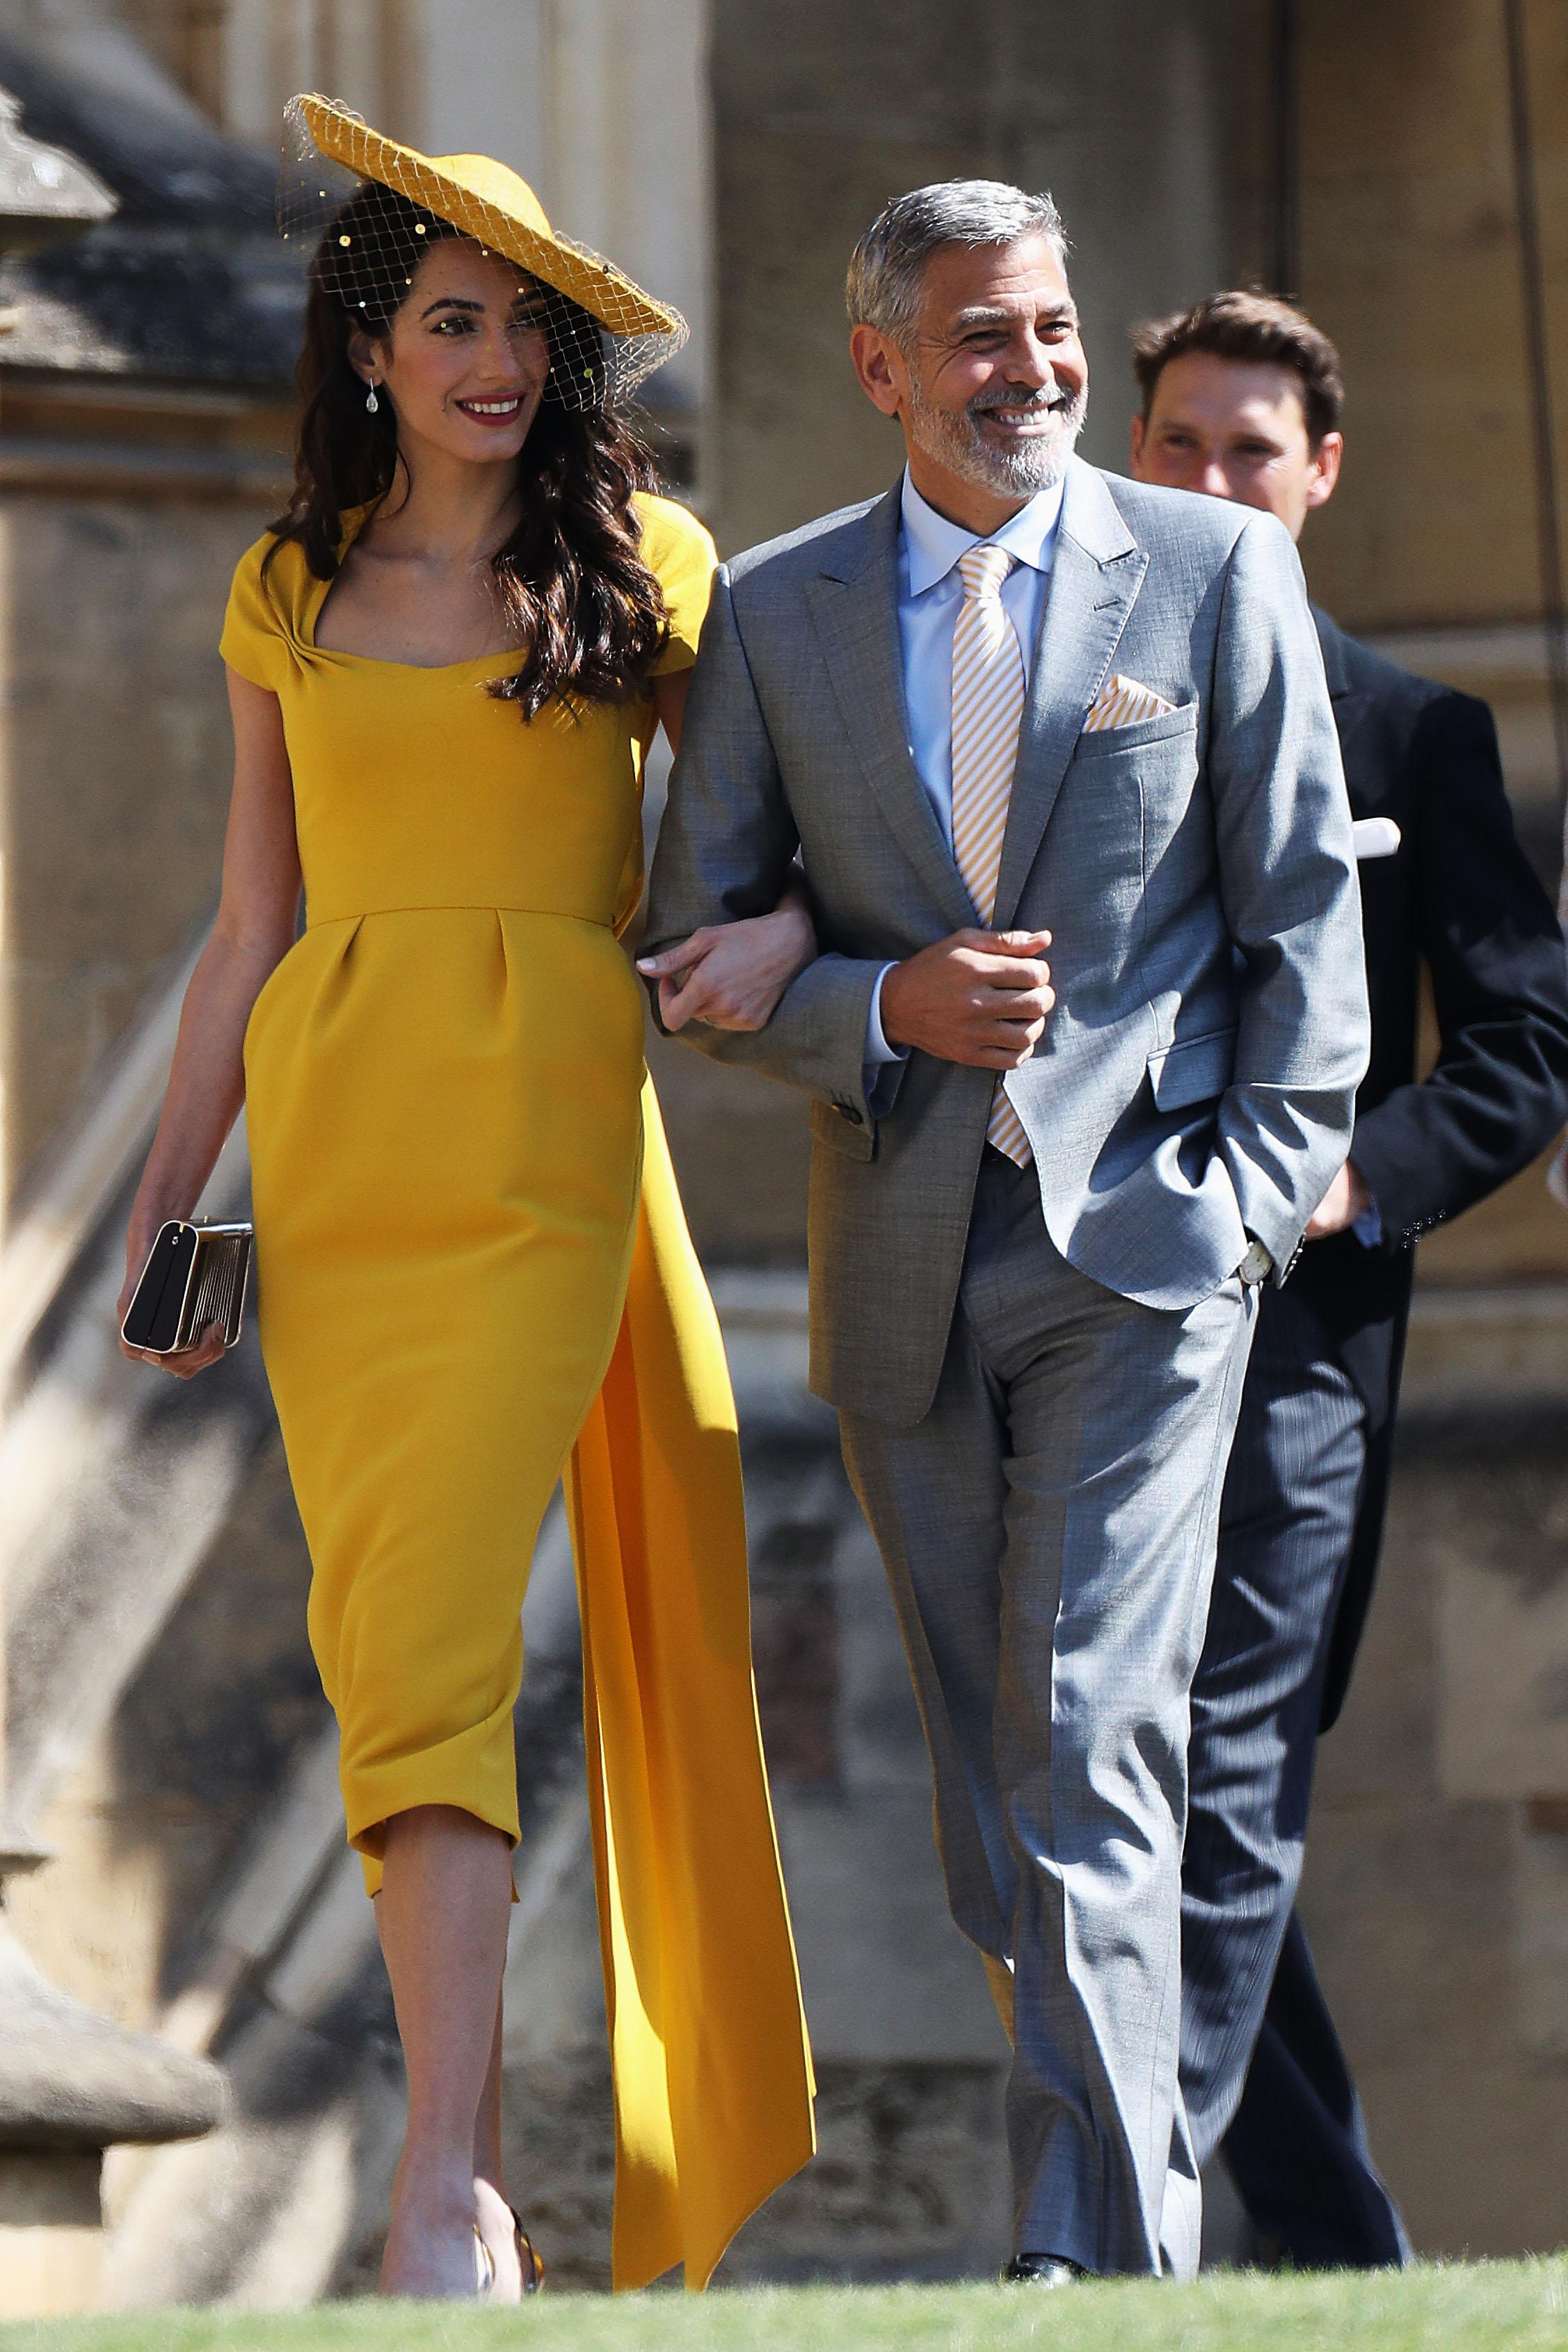 bc209b8c0c9 Amal and George Clooney arrive at St. George s Chapel. (Photo  Getty Images)